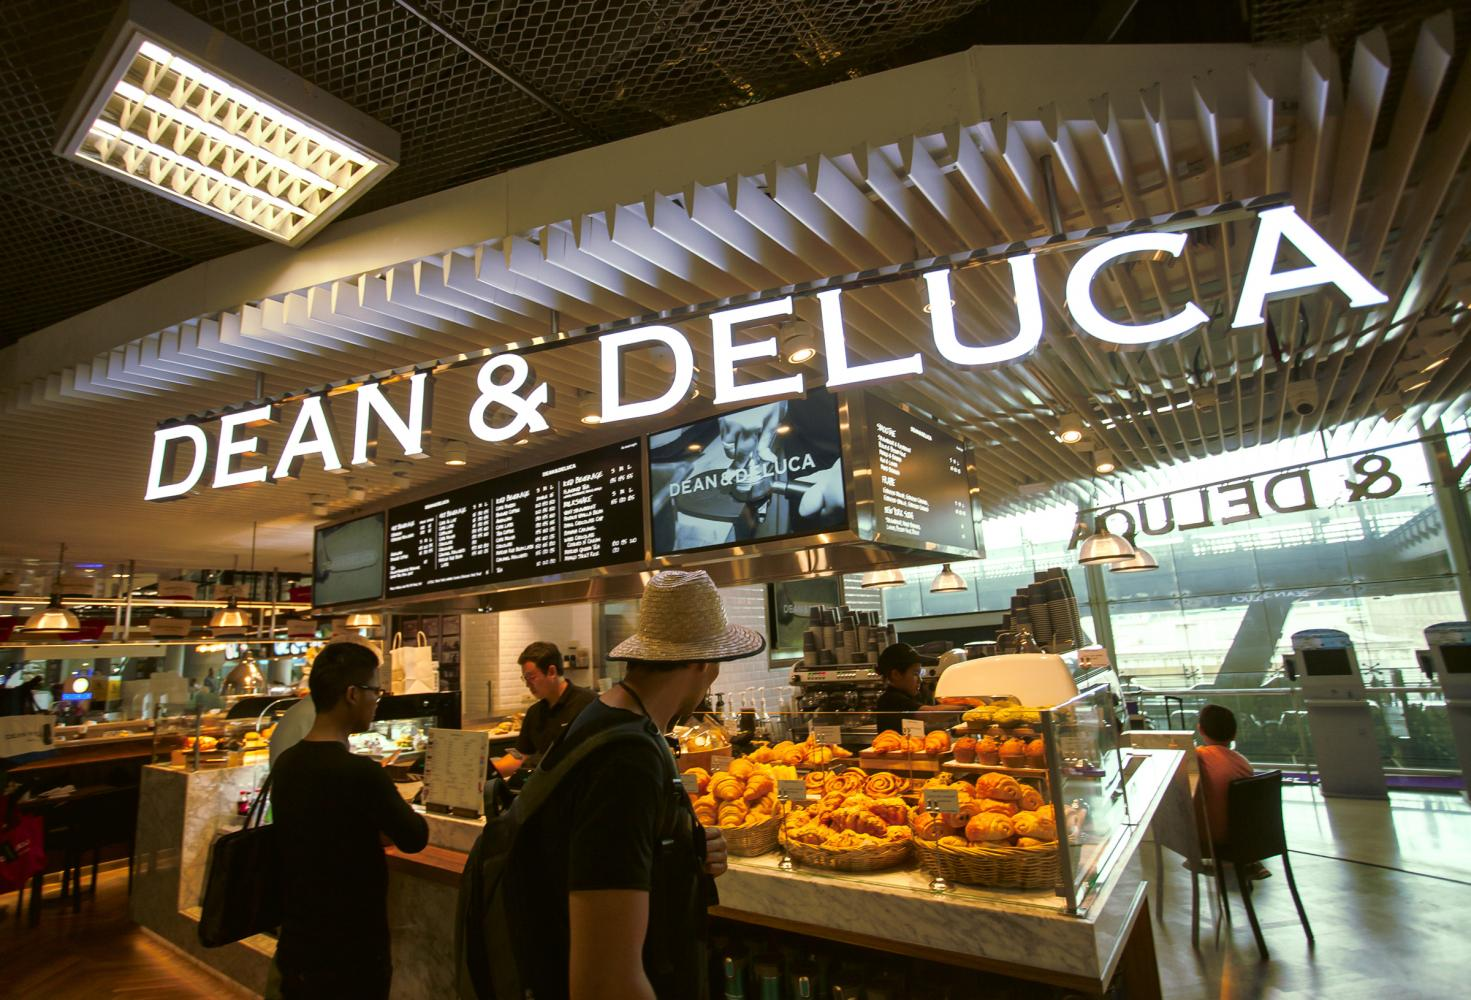 Dean & DeLuca at Suvarnabhumi airport. Owned by Pace, the grocer has filed for bankruptcy in the US.